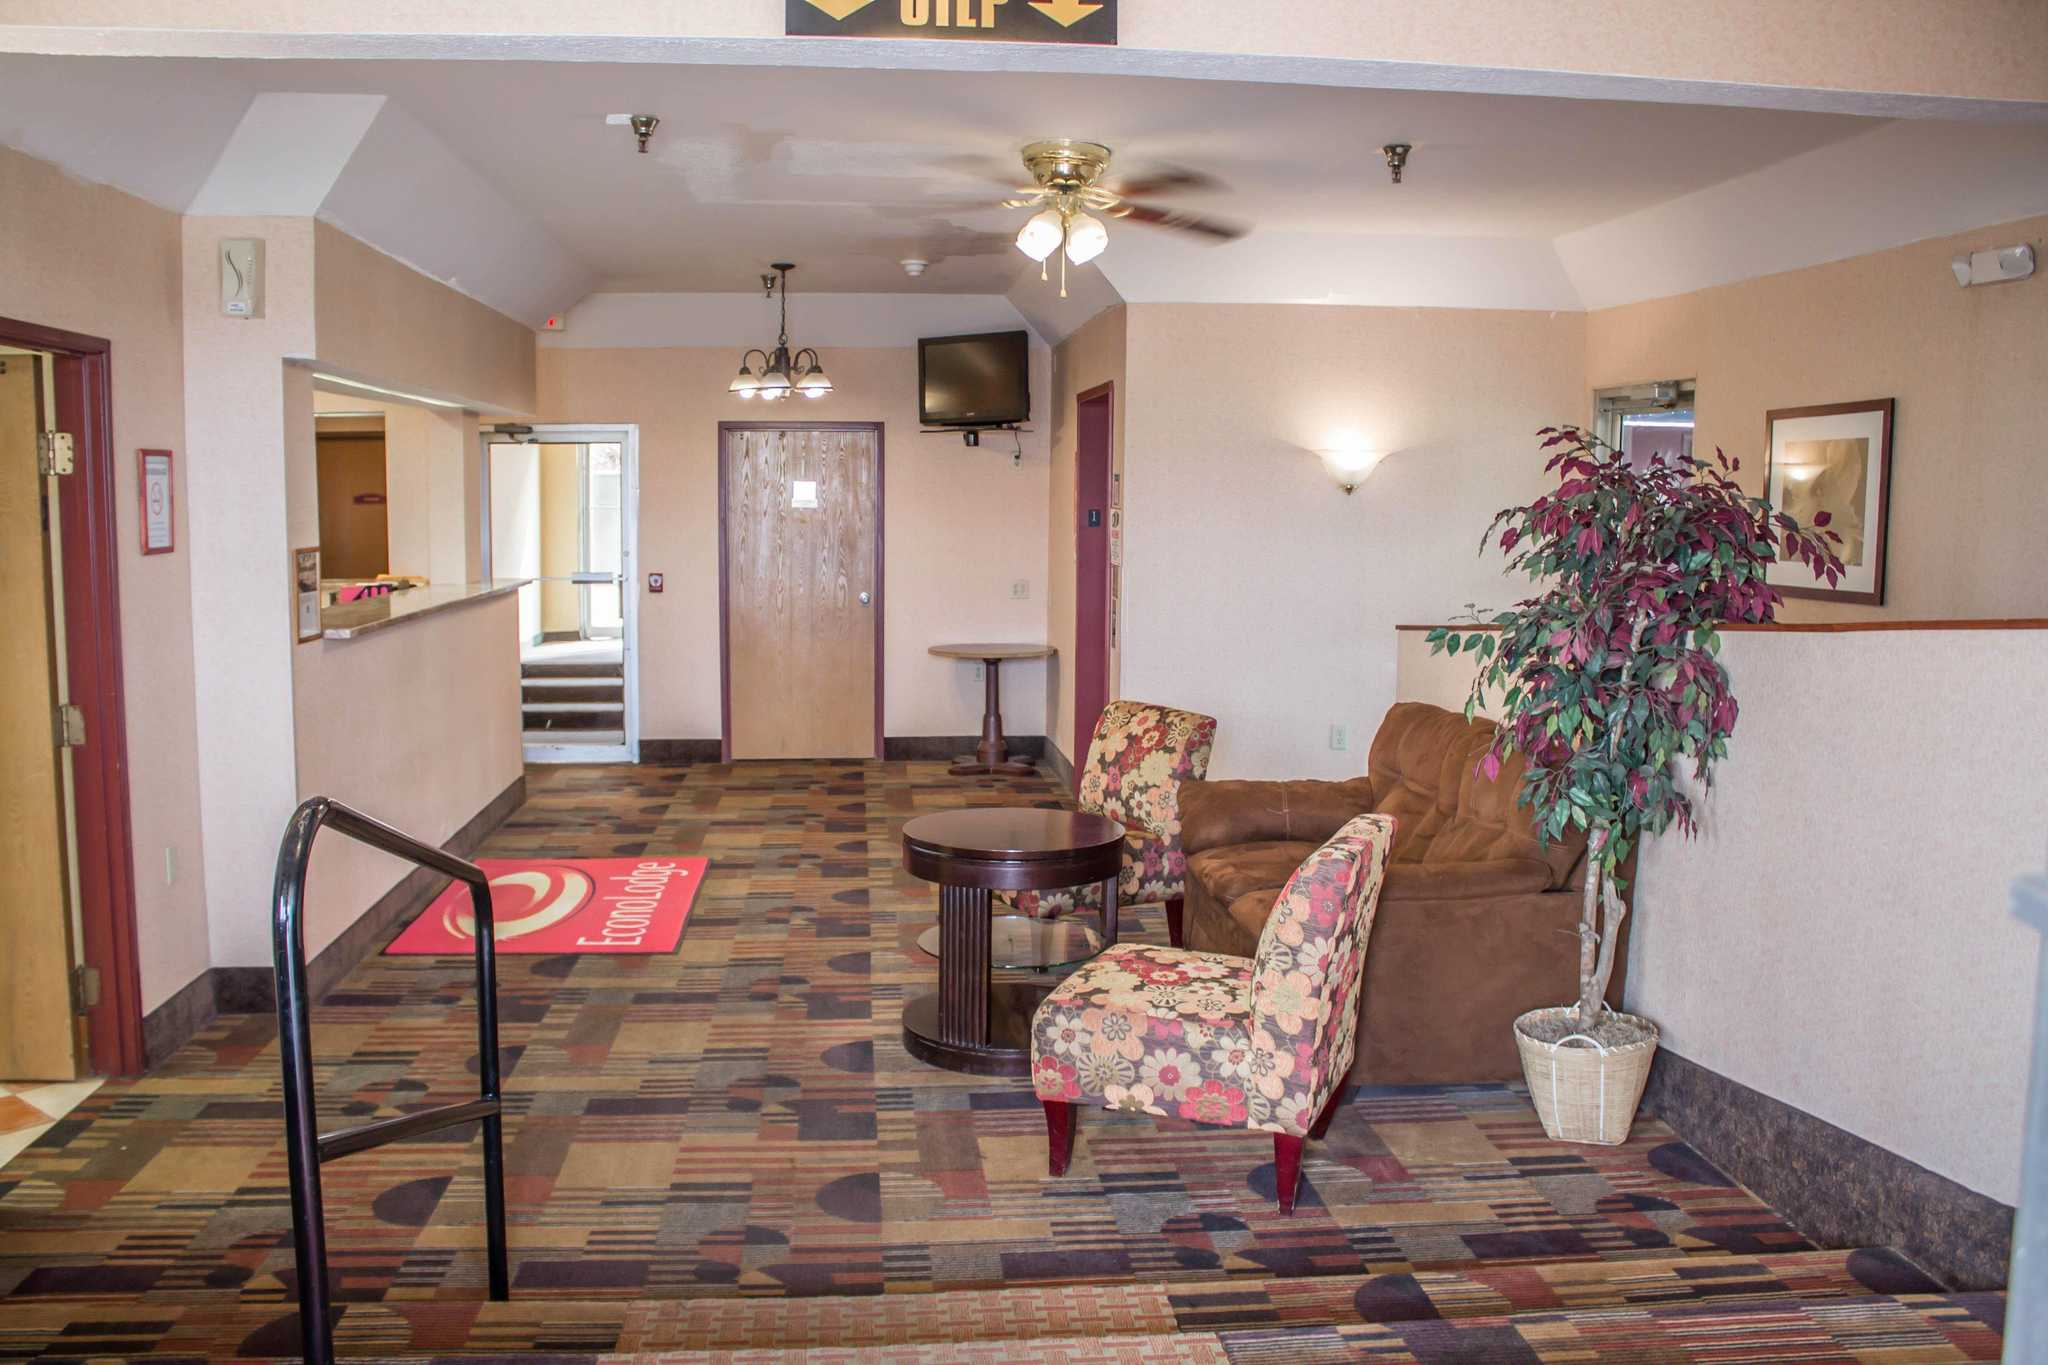 Econo Lodge image 19